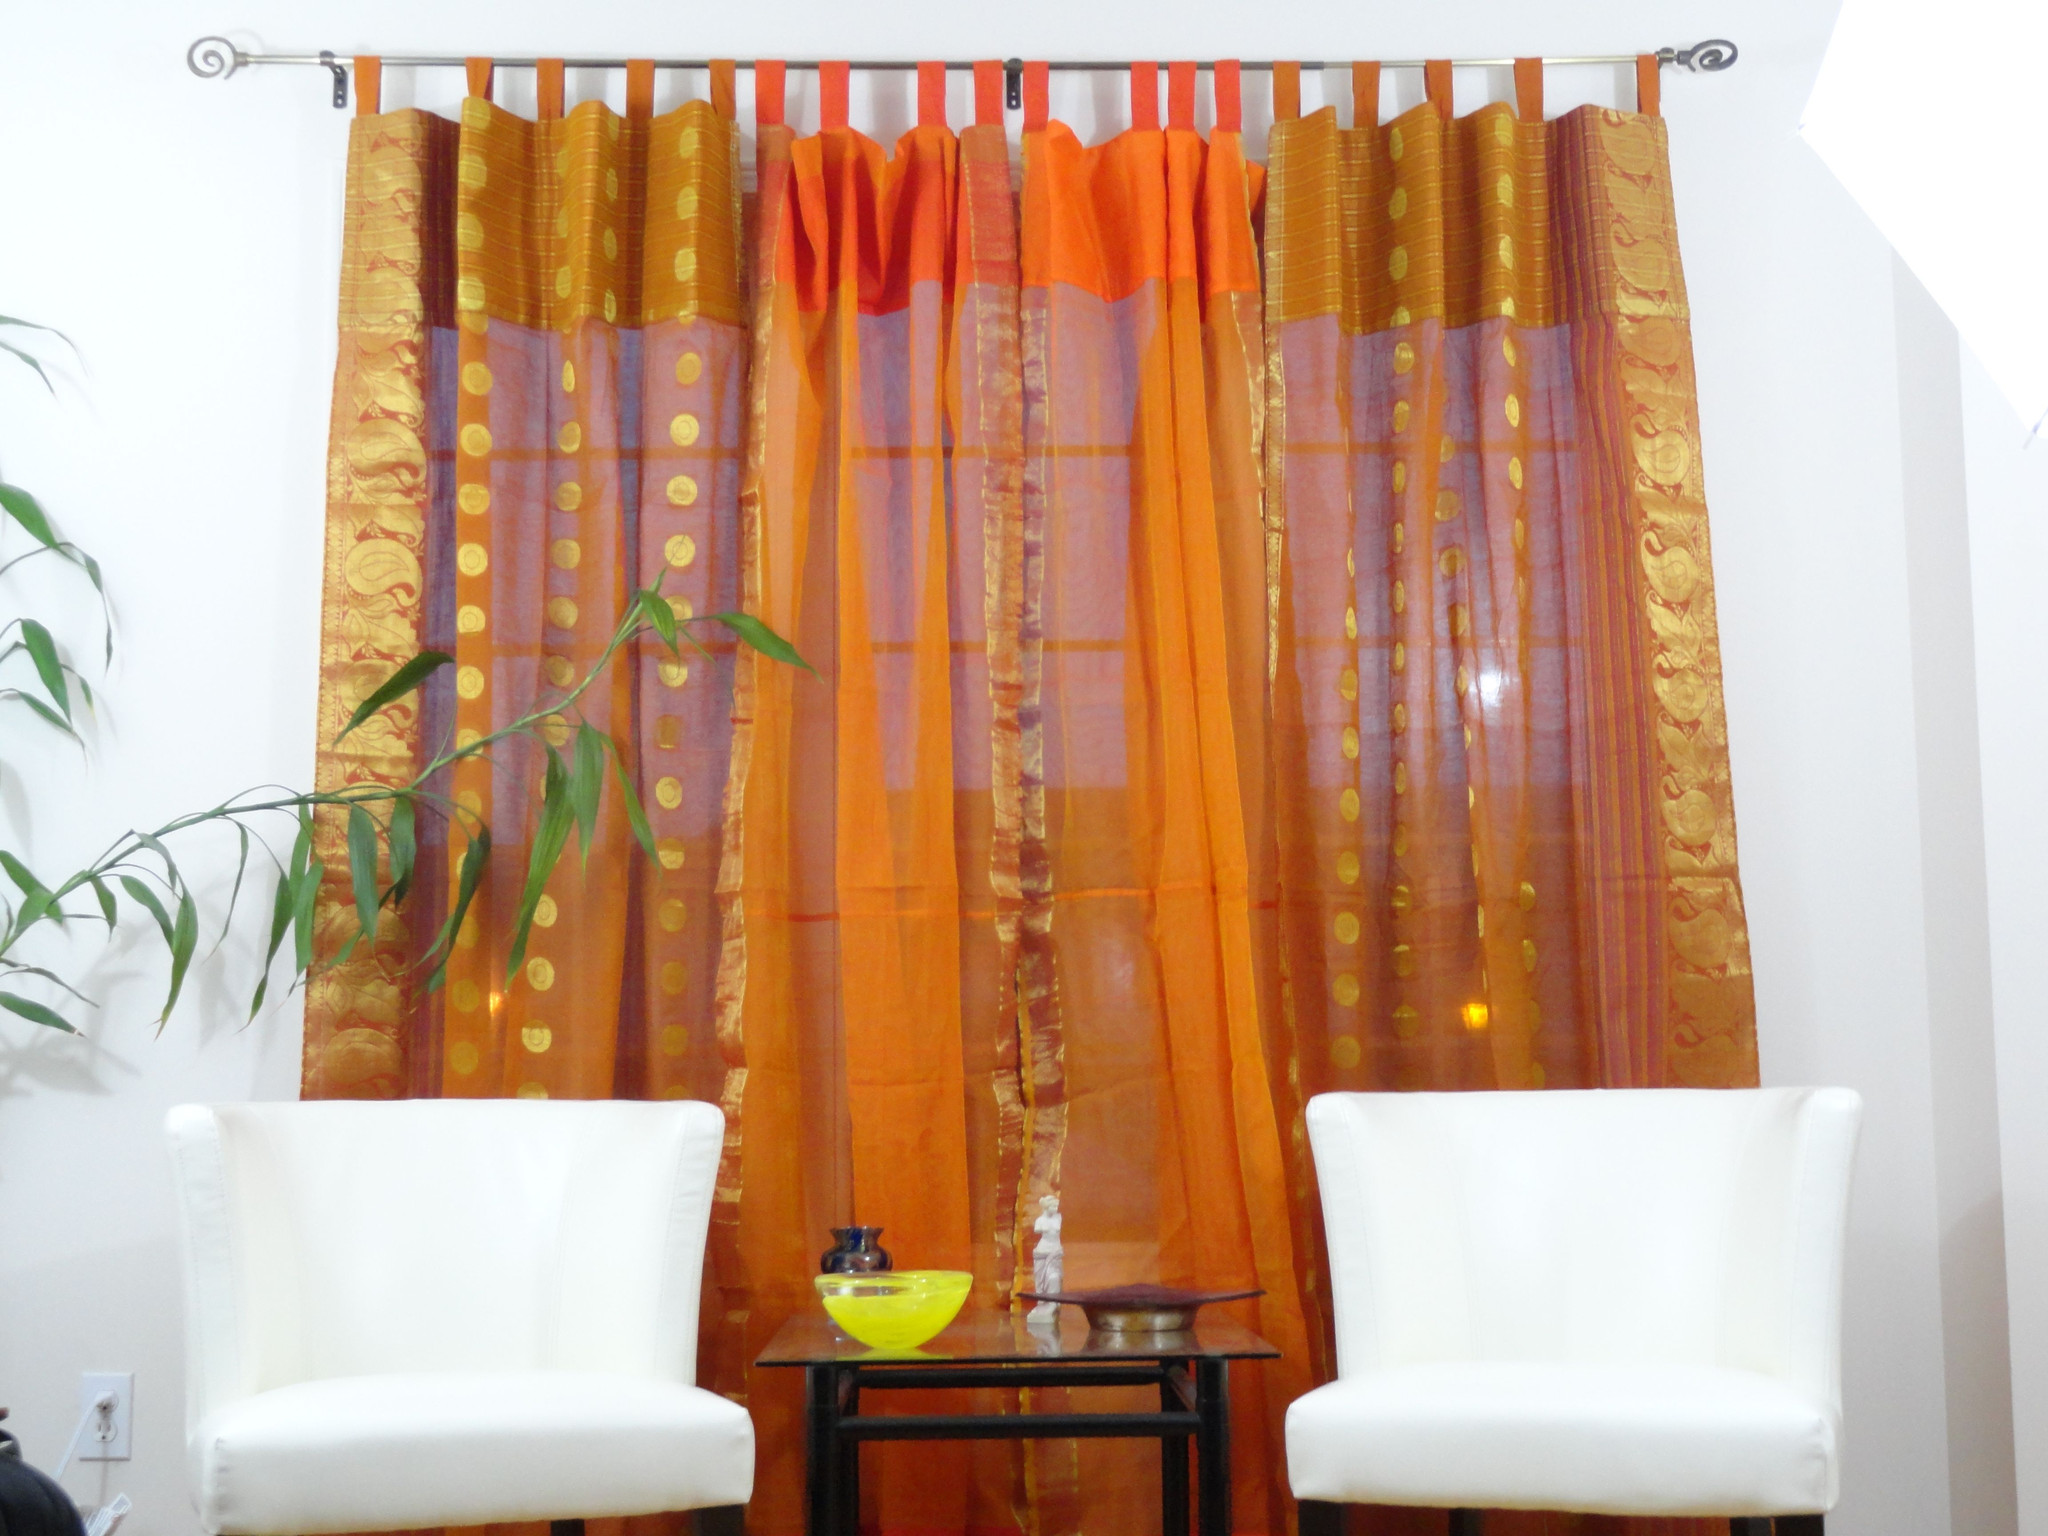 Arched Window Drapes | Windows Drapes | Window Drapes